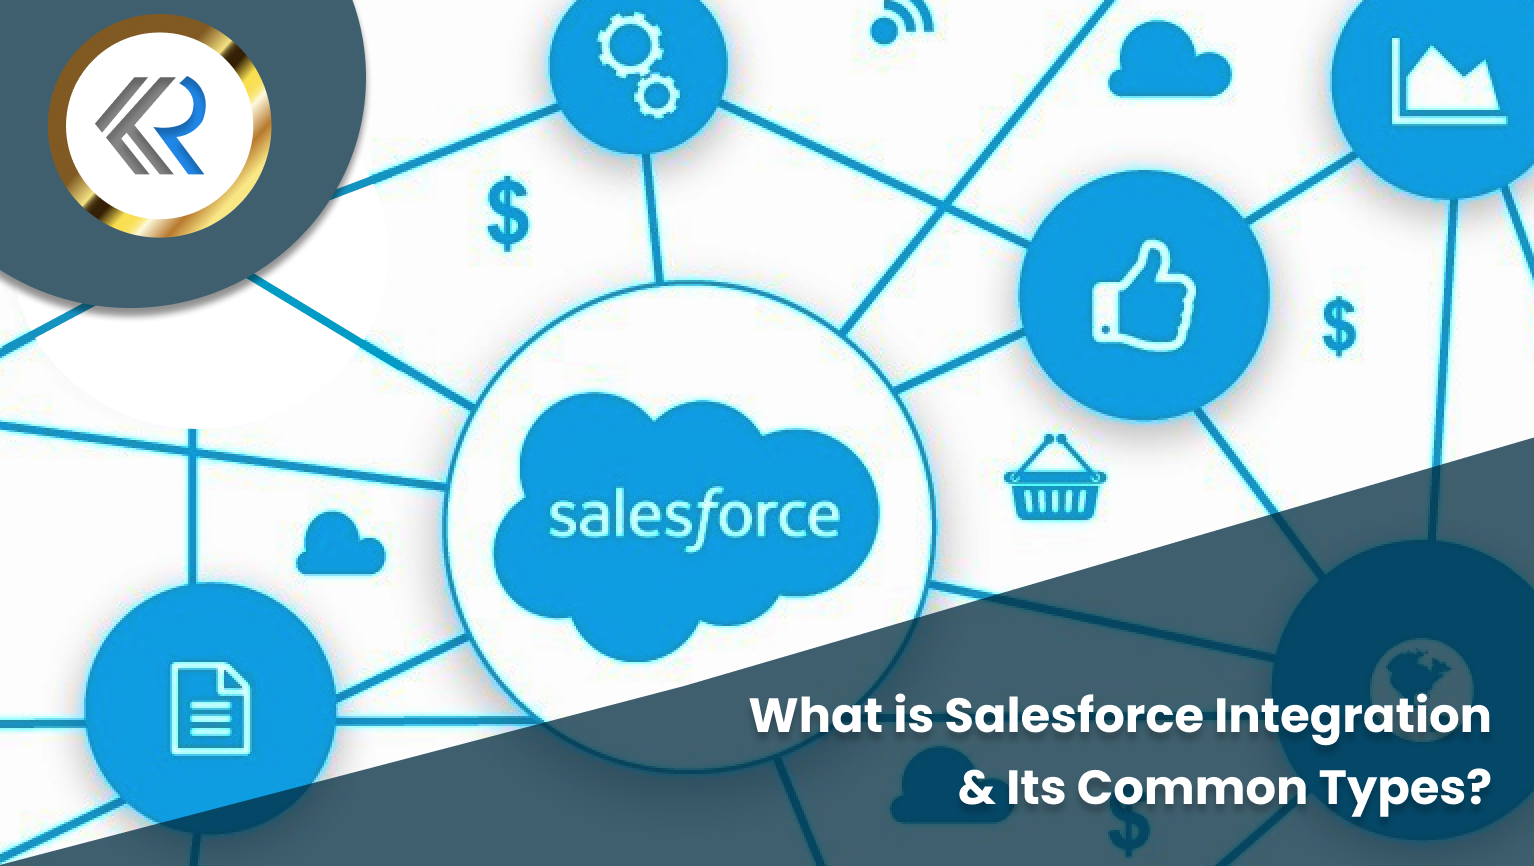 What is Salesforce Integration and its Common Types